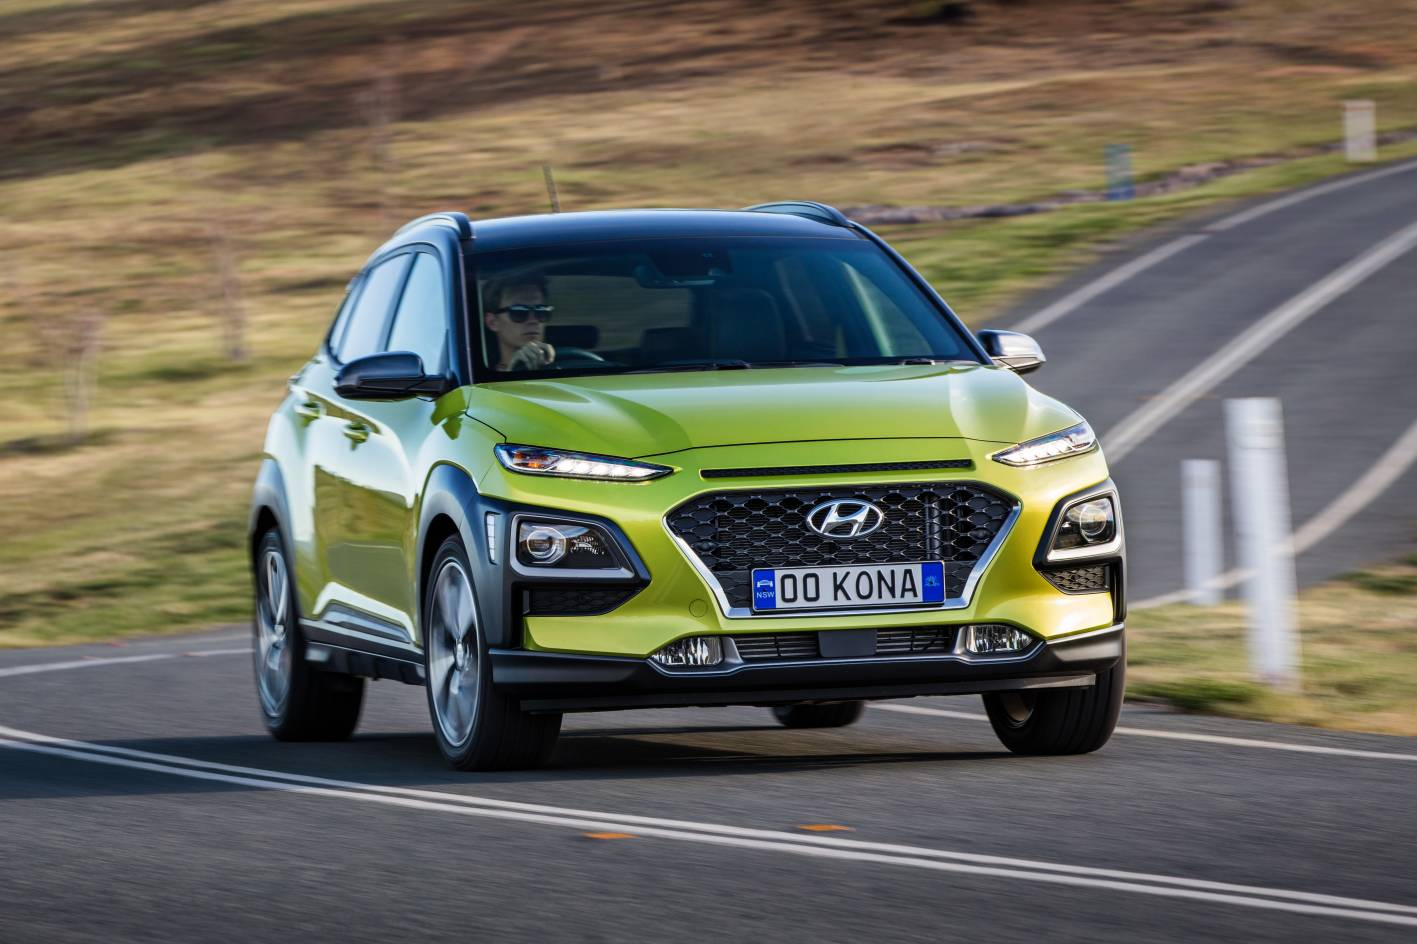 5 things you need to know about the hyundai kona practical motoring 5 things you need to know about the hyundai kona solutioingenieria Image collections